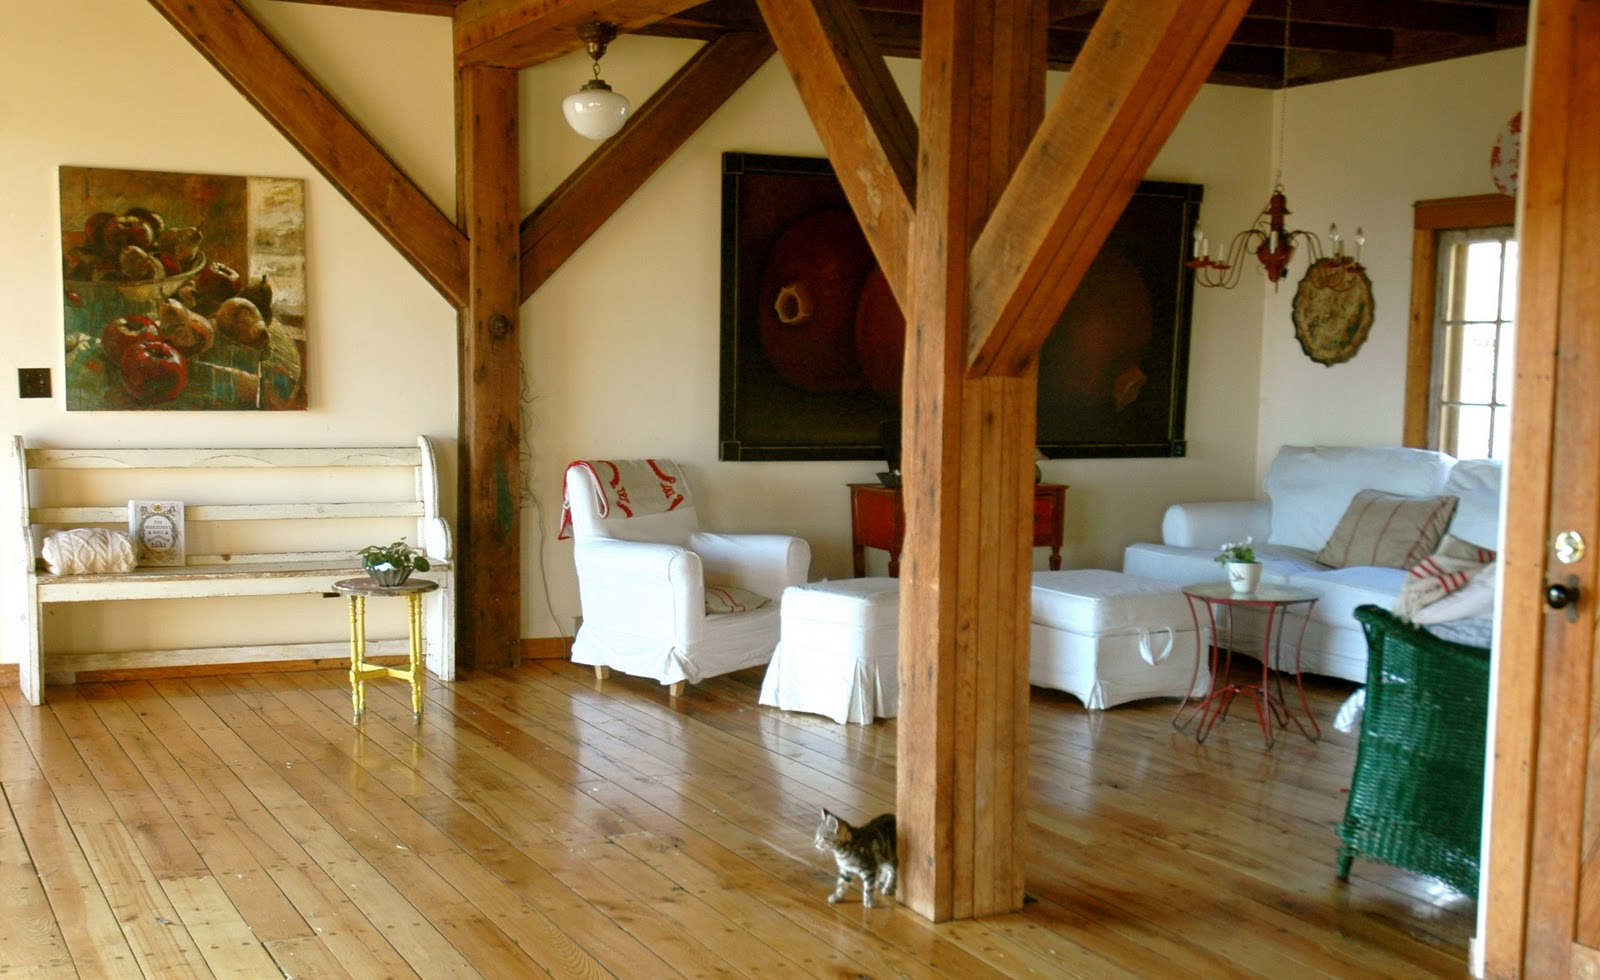 Stephmodo real life home a converted barn in vermont for Converting a pole barn into living space